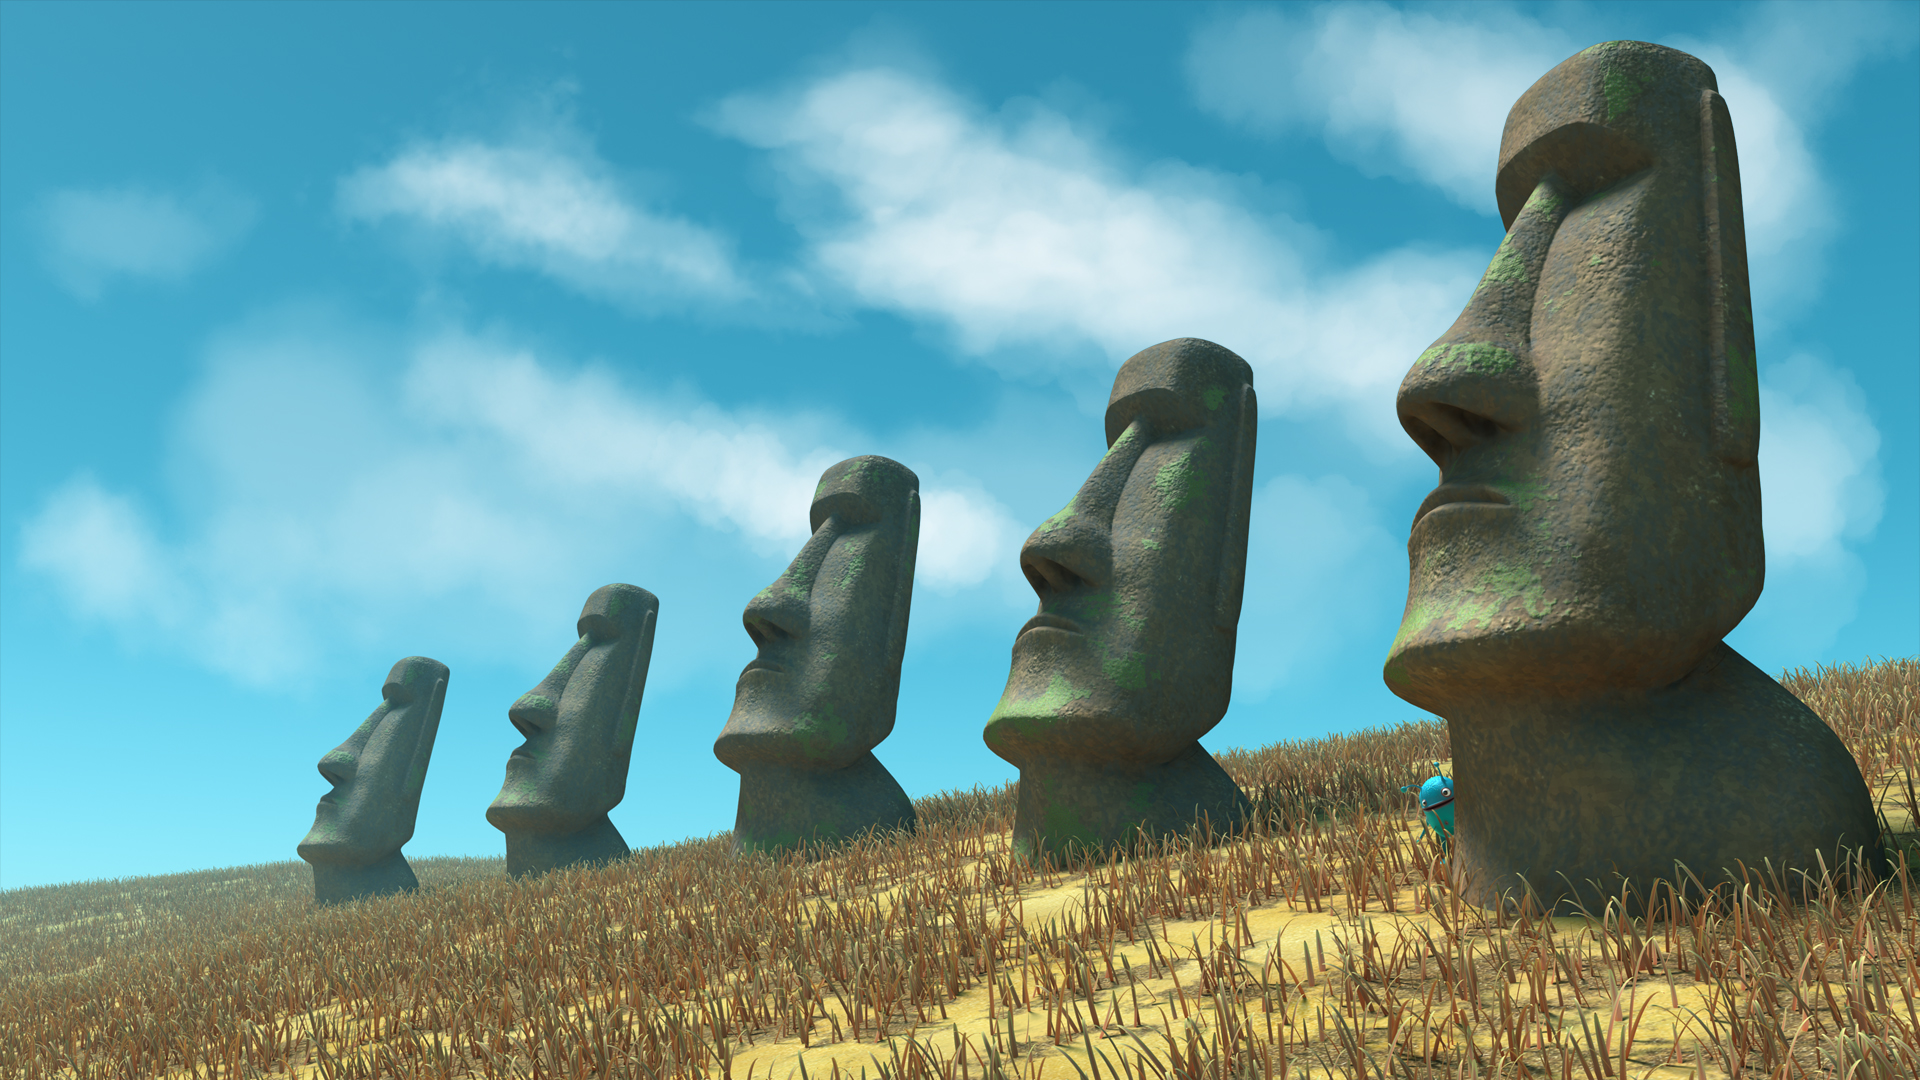 EasterIsland_Scaled_peekaboo_HD2.jpg